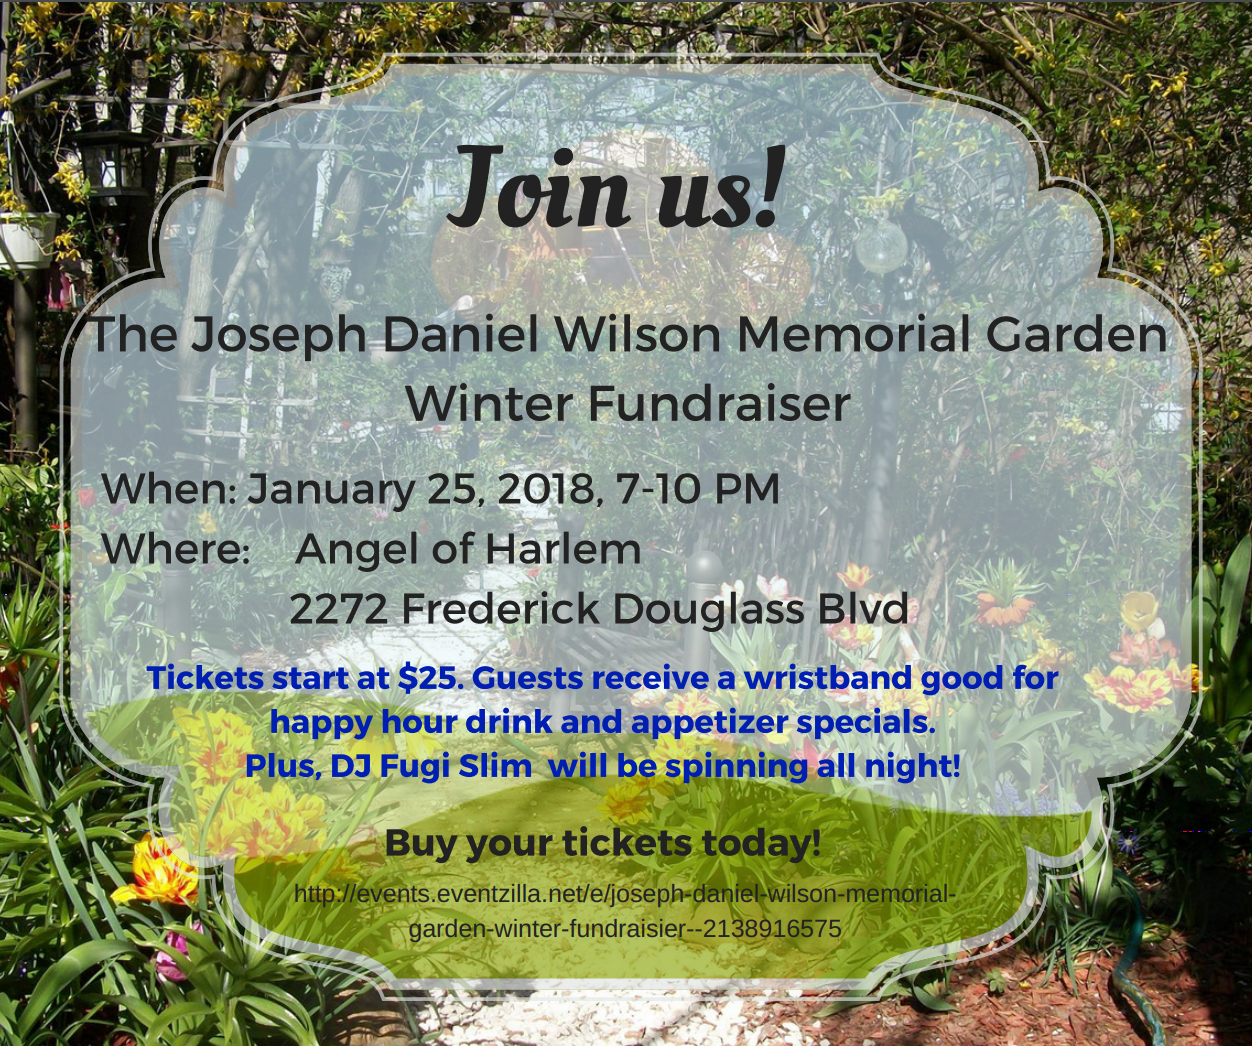 The Joseph Daniel Wilson Memorial Garden Winter Fundraiser @ Angel of Harlem